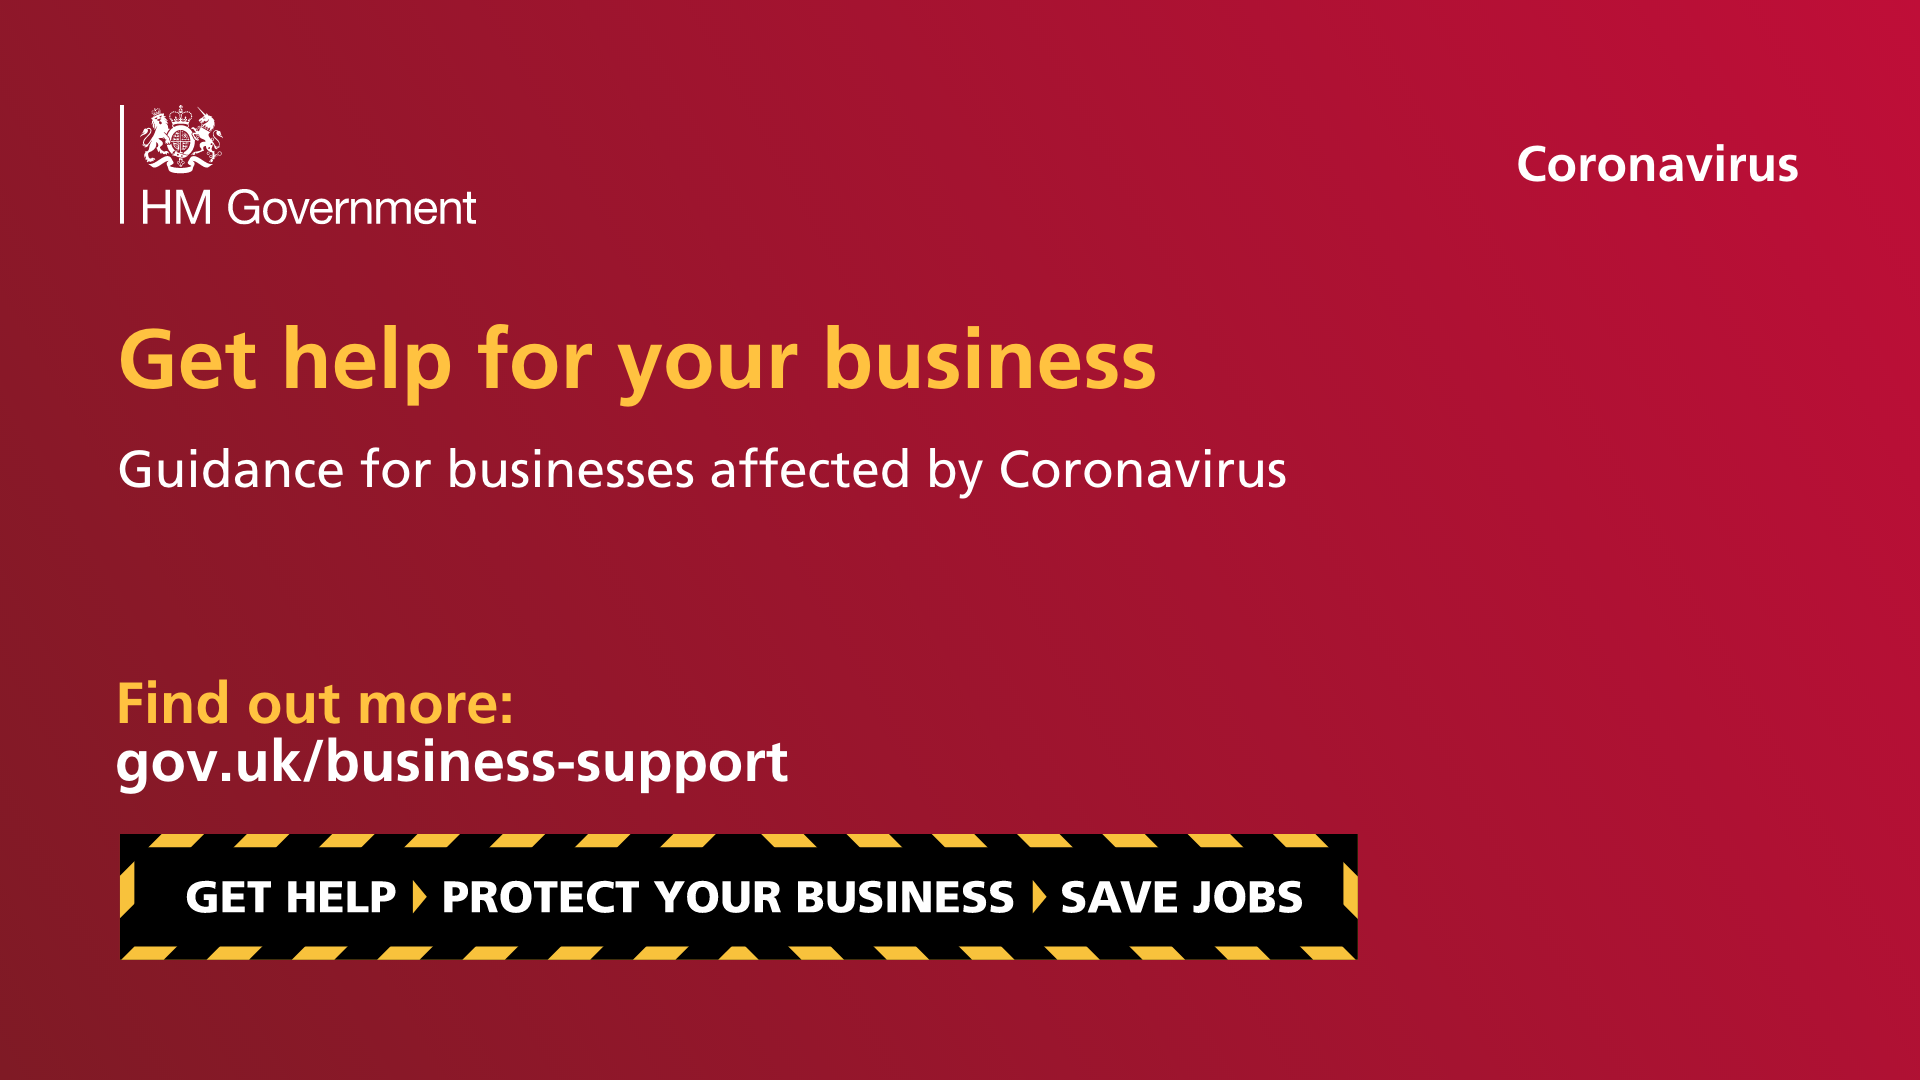 A banner to advertise business support from GOV.UK